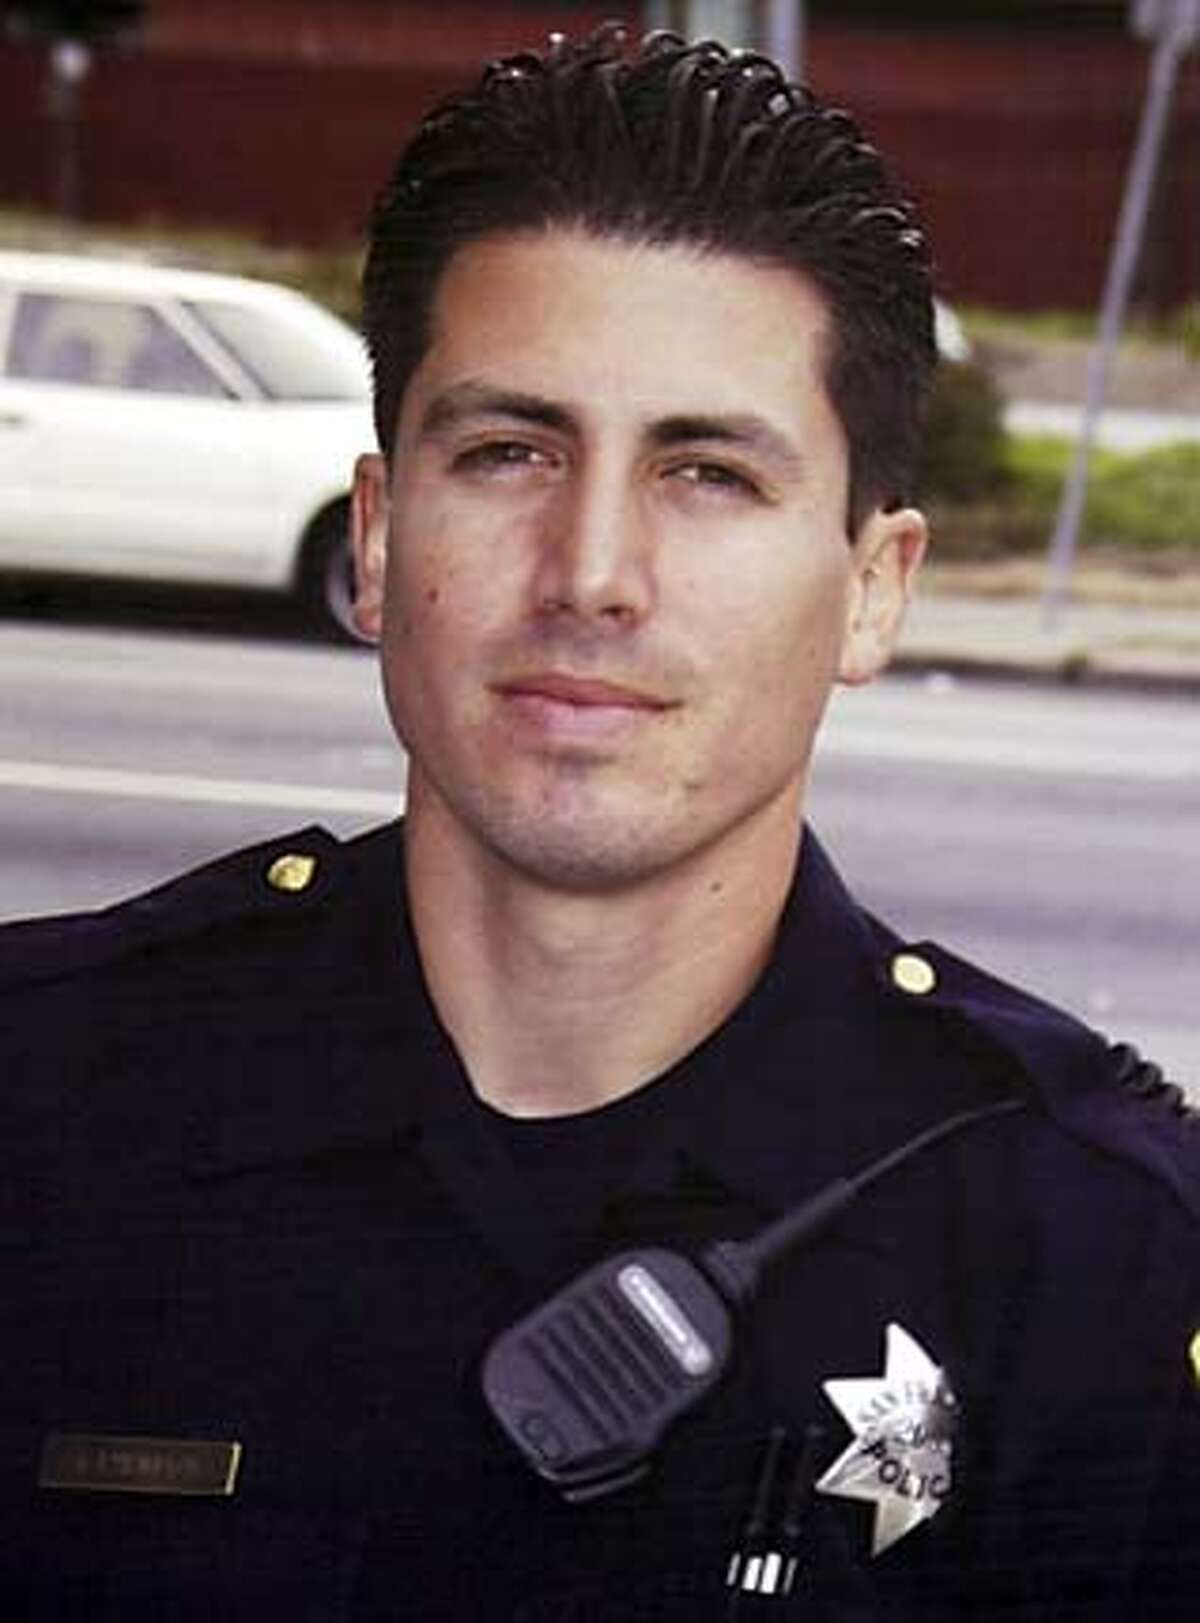 ** FILE **Undated photo of slain San Francisco Police Officer Isaac Espinoza, who was shot Sunday in the Hunterspoint Bayview area of San Francisco. Espinoza, 29, was working undercover in one of the city's most troubled neighborhoods late Saturday when he was shot twice. It was the first killing of an on-duty officer in San Francisco since 1994. (AP Photo/San Francisco Police Dept via The San Francisco Chronicle) Officer Isaac Espinoza was working undercover when he was shot twice and killed. ALSO RAN: 10/20/2006 ProductNameChronicle Ran on: 09-13-2004 Kamala Harris Ran on: 09-13-2004 Kamala Harris ALSO Ran on: 08-13-2006 Officer Isaac Espinoza Ran on: 10-16-2006 Isaac Espinoza Ran on: 10-17-2006 In his own words The prosecutor quoted from a number of David Hills writings: Hill boasted that he was a thugged out gang member livin the mob life. Digging graves is my thang, Hill wrote in one rap lyric. F -- da fed & cops! he wrote in another lyric. Im blowing up ya spot! Ran on: 10-19-2006 David Hills defense contends he thought the plainclothes officers were gang rivals when he shot them. Ran on: 10-20-2006 Isaac Espinoza UNDATED PHOTO; SAN FRANCISCO POLICE DEPT VIA THE SAN FRANCISCO CHRONICLE